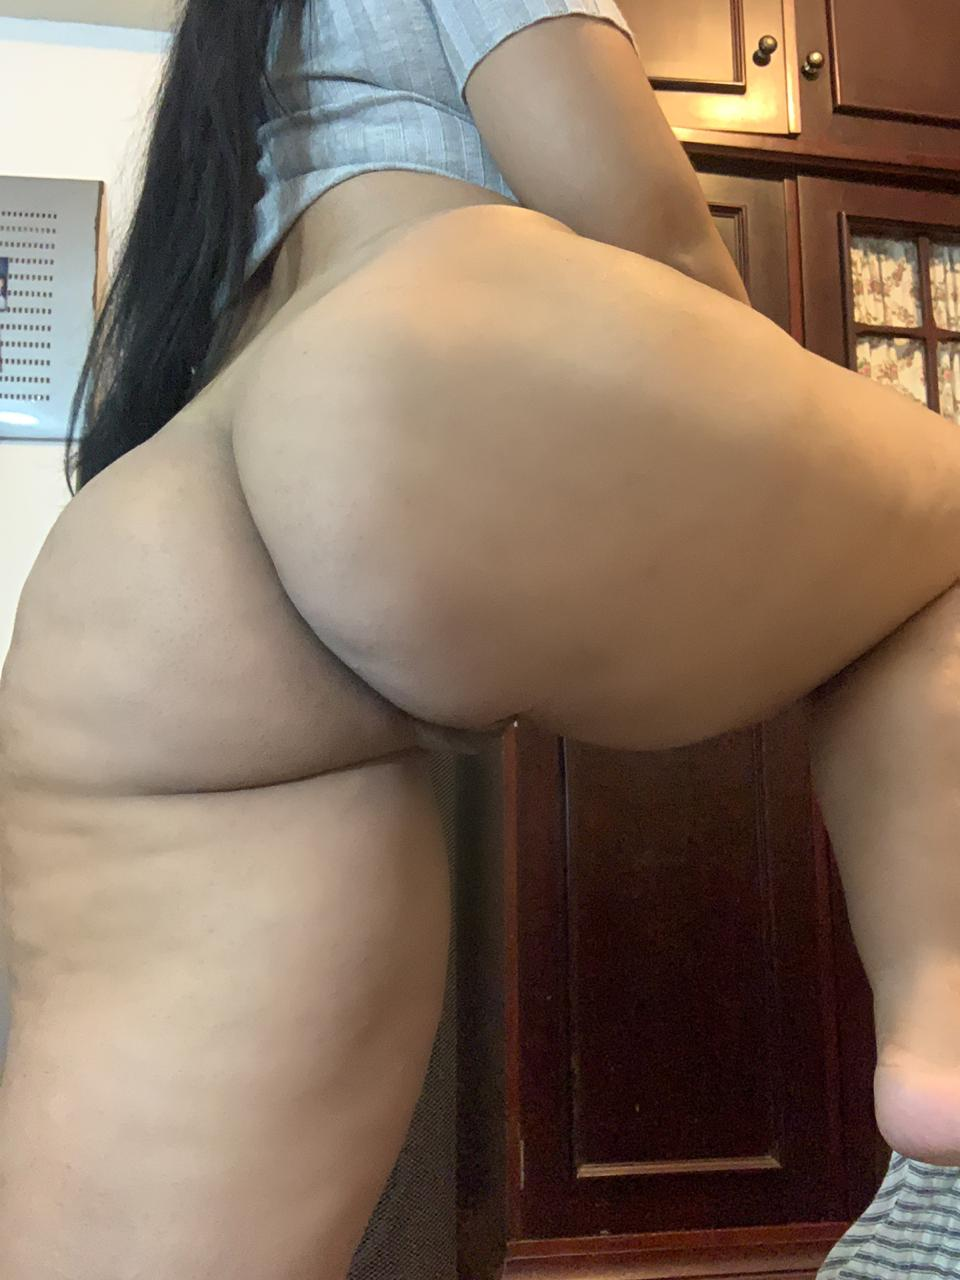 Victoria Matosa Nude Onlyfans Leaked! 0010